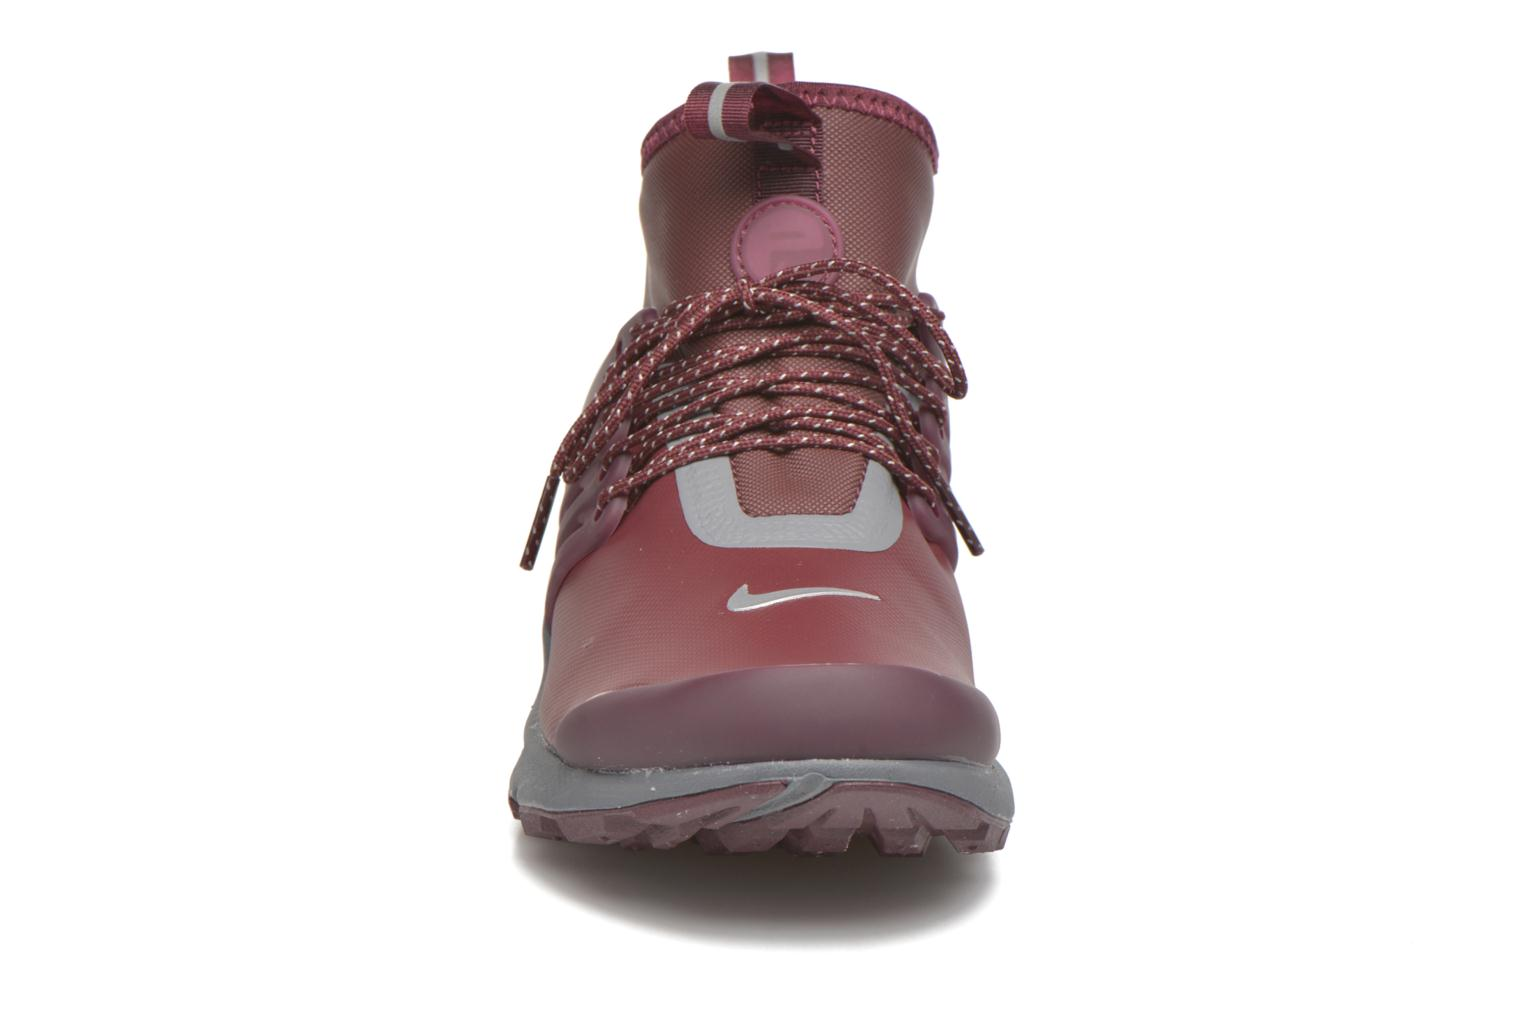 W Air Presto Mid Utility Night Maroon/Night Maroon-Reflect Silver